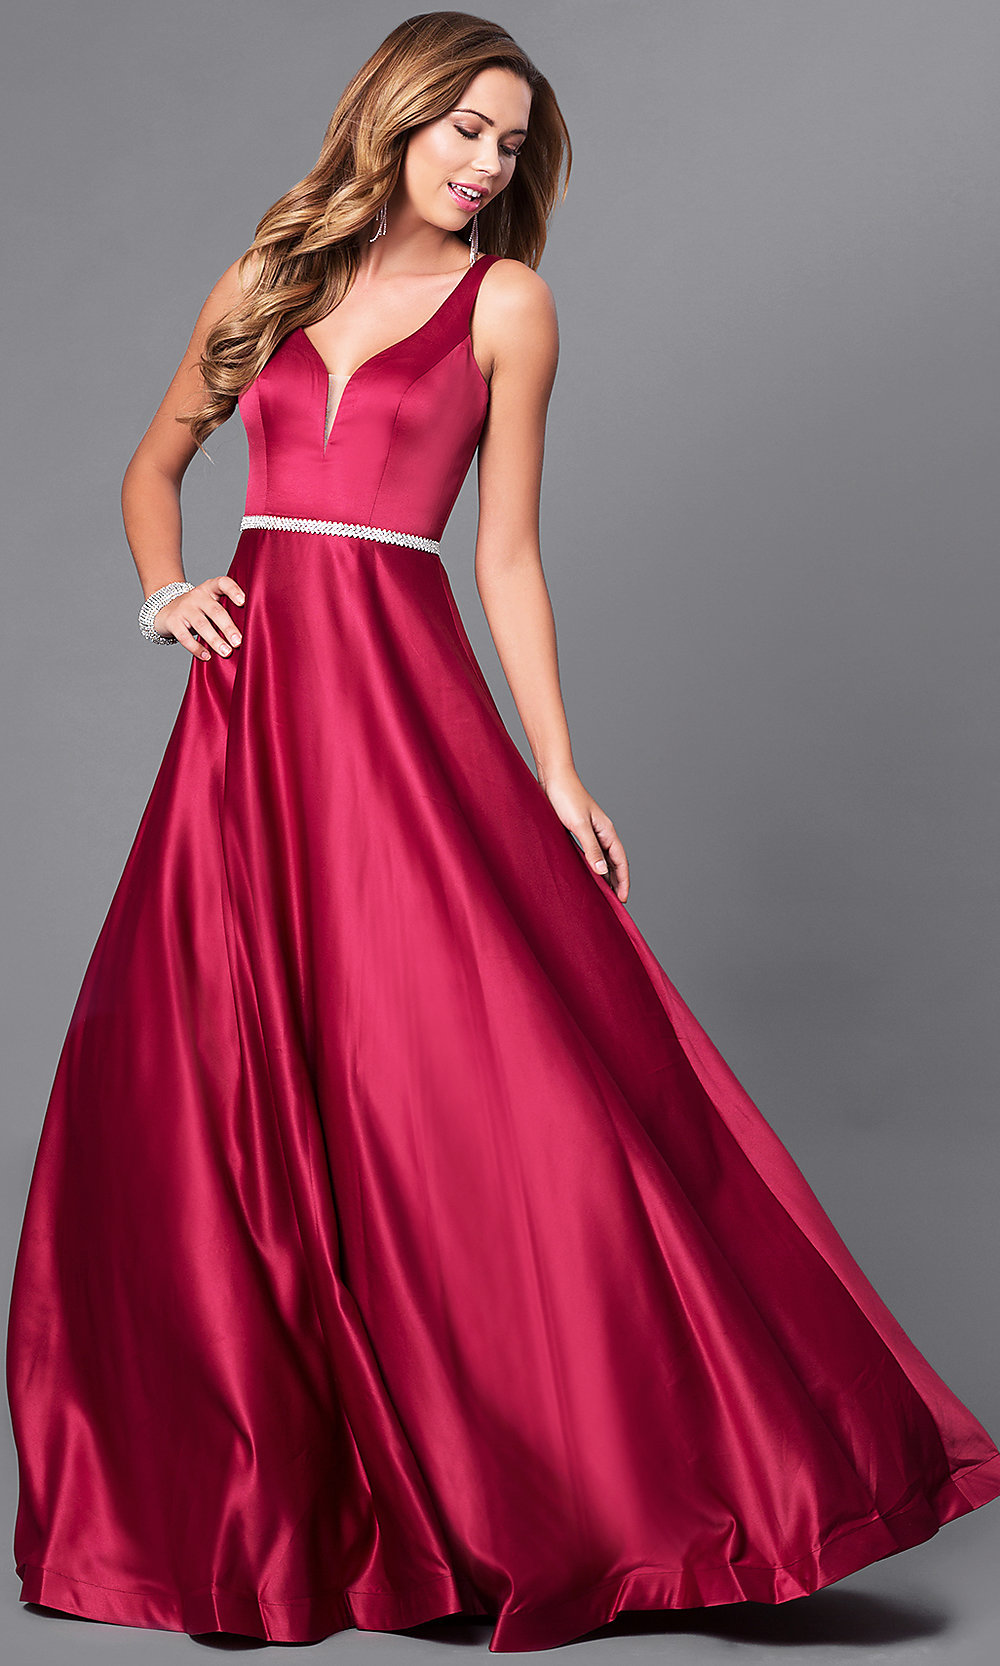 Classic Long V-Neck A-Line Satin Prom Dress-PromGirl